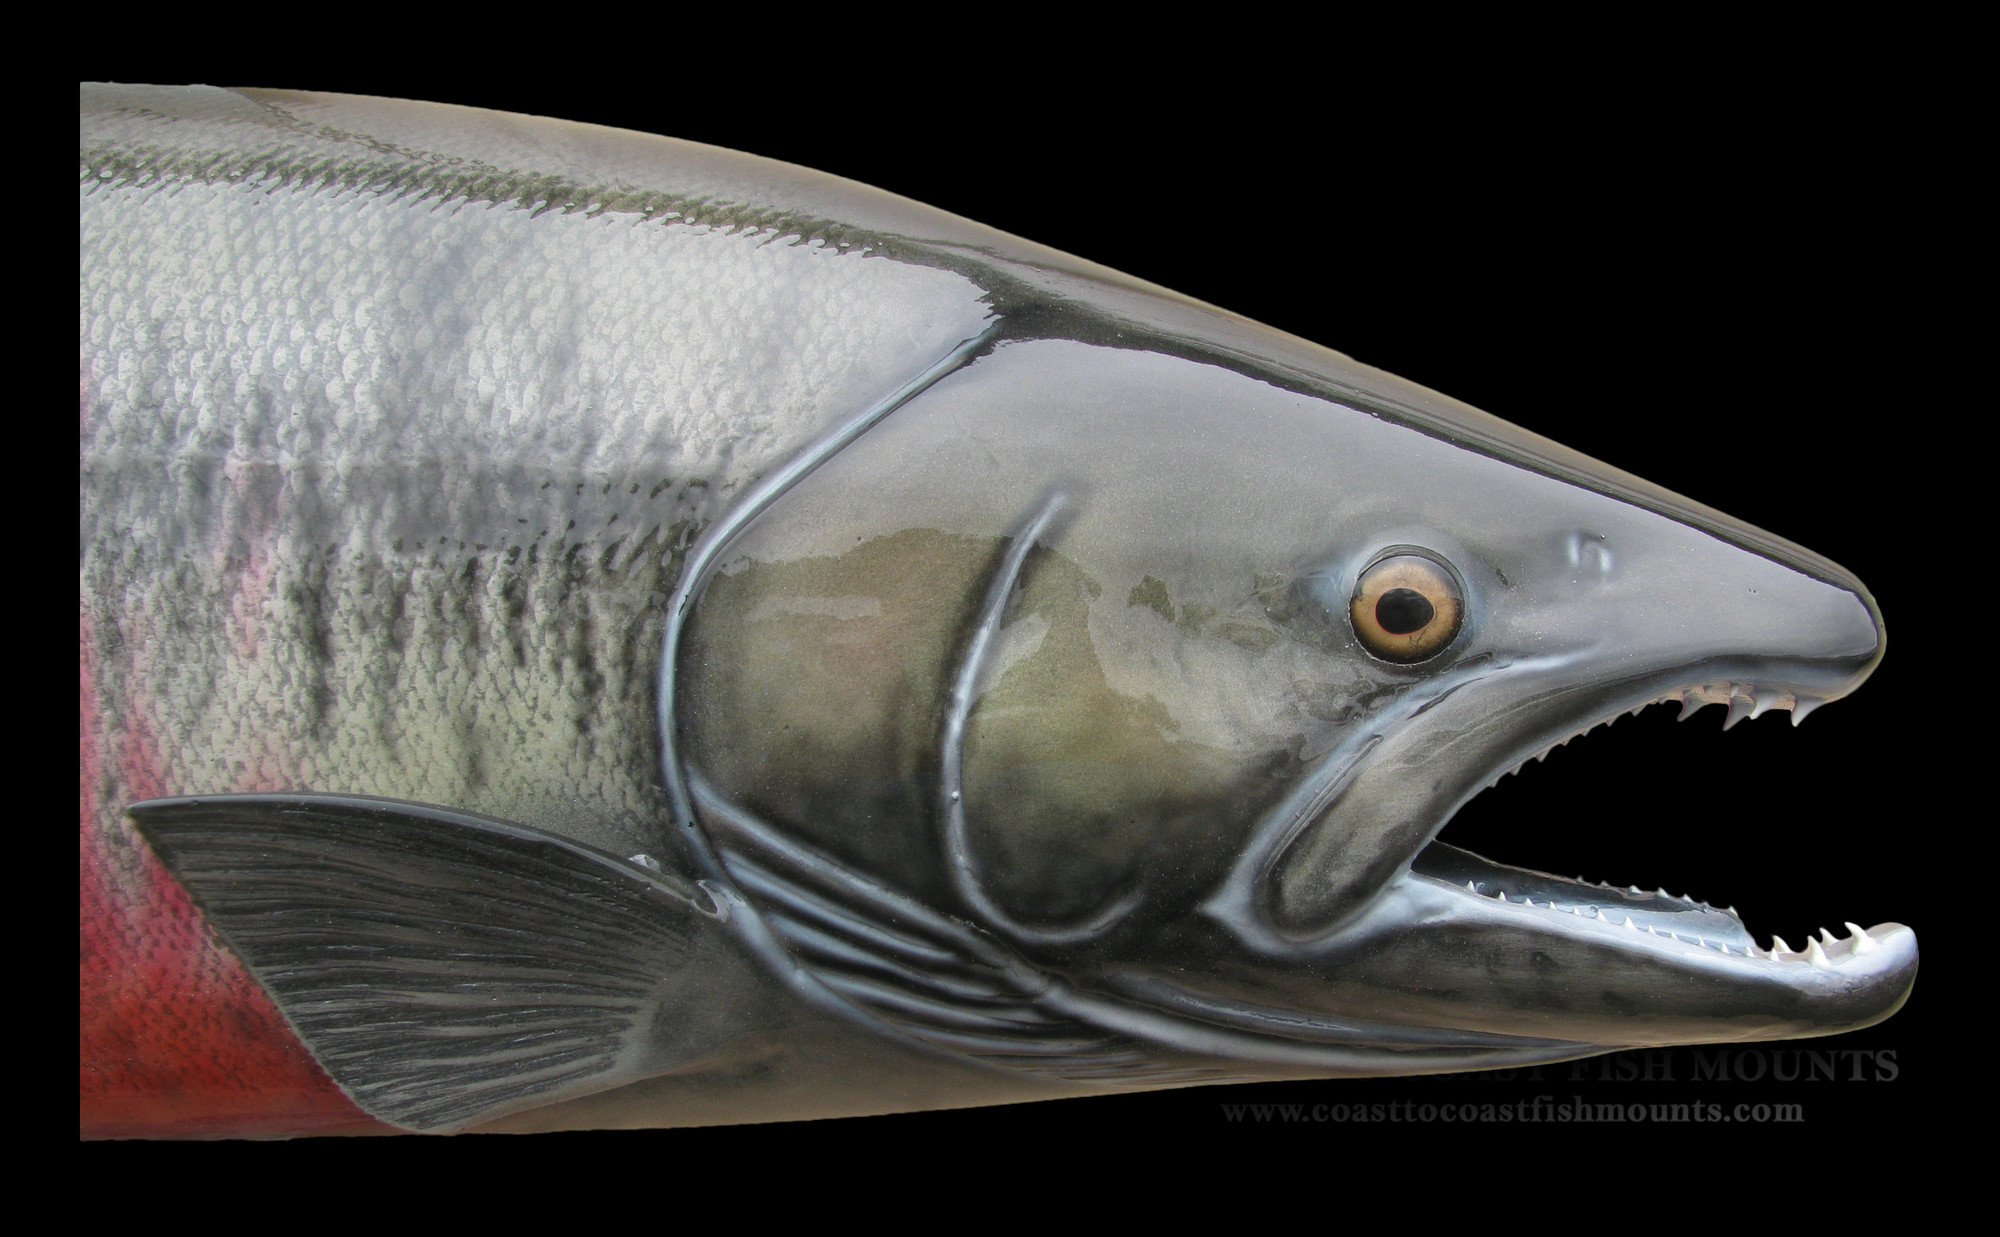 Chum salmon fish mount and fish replicas coast to coast for Fiberglass fish replicas